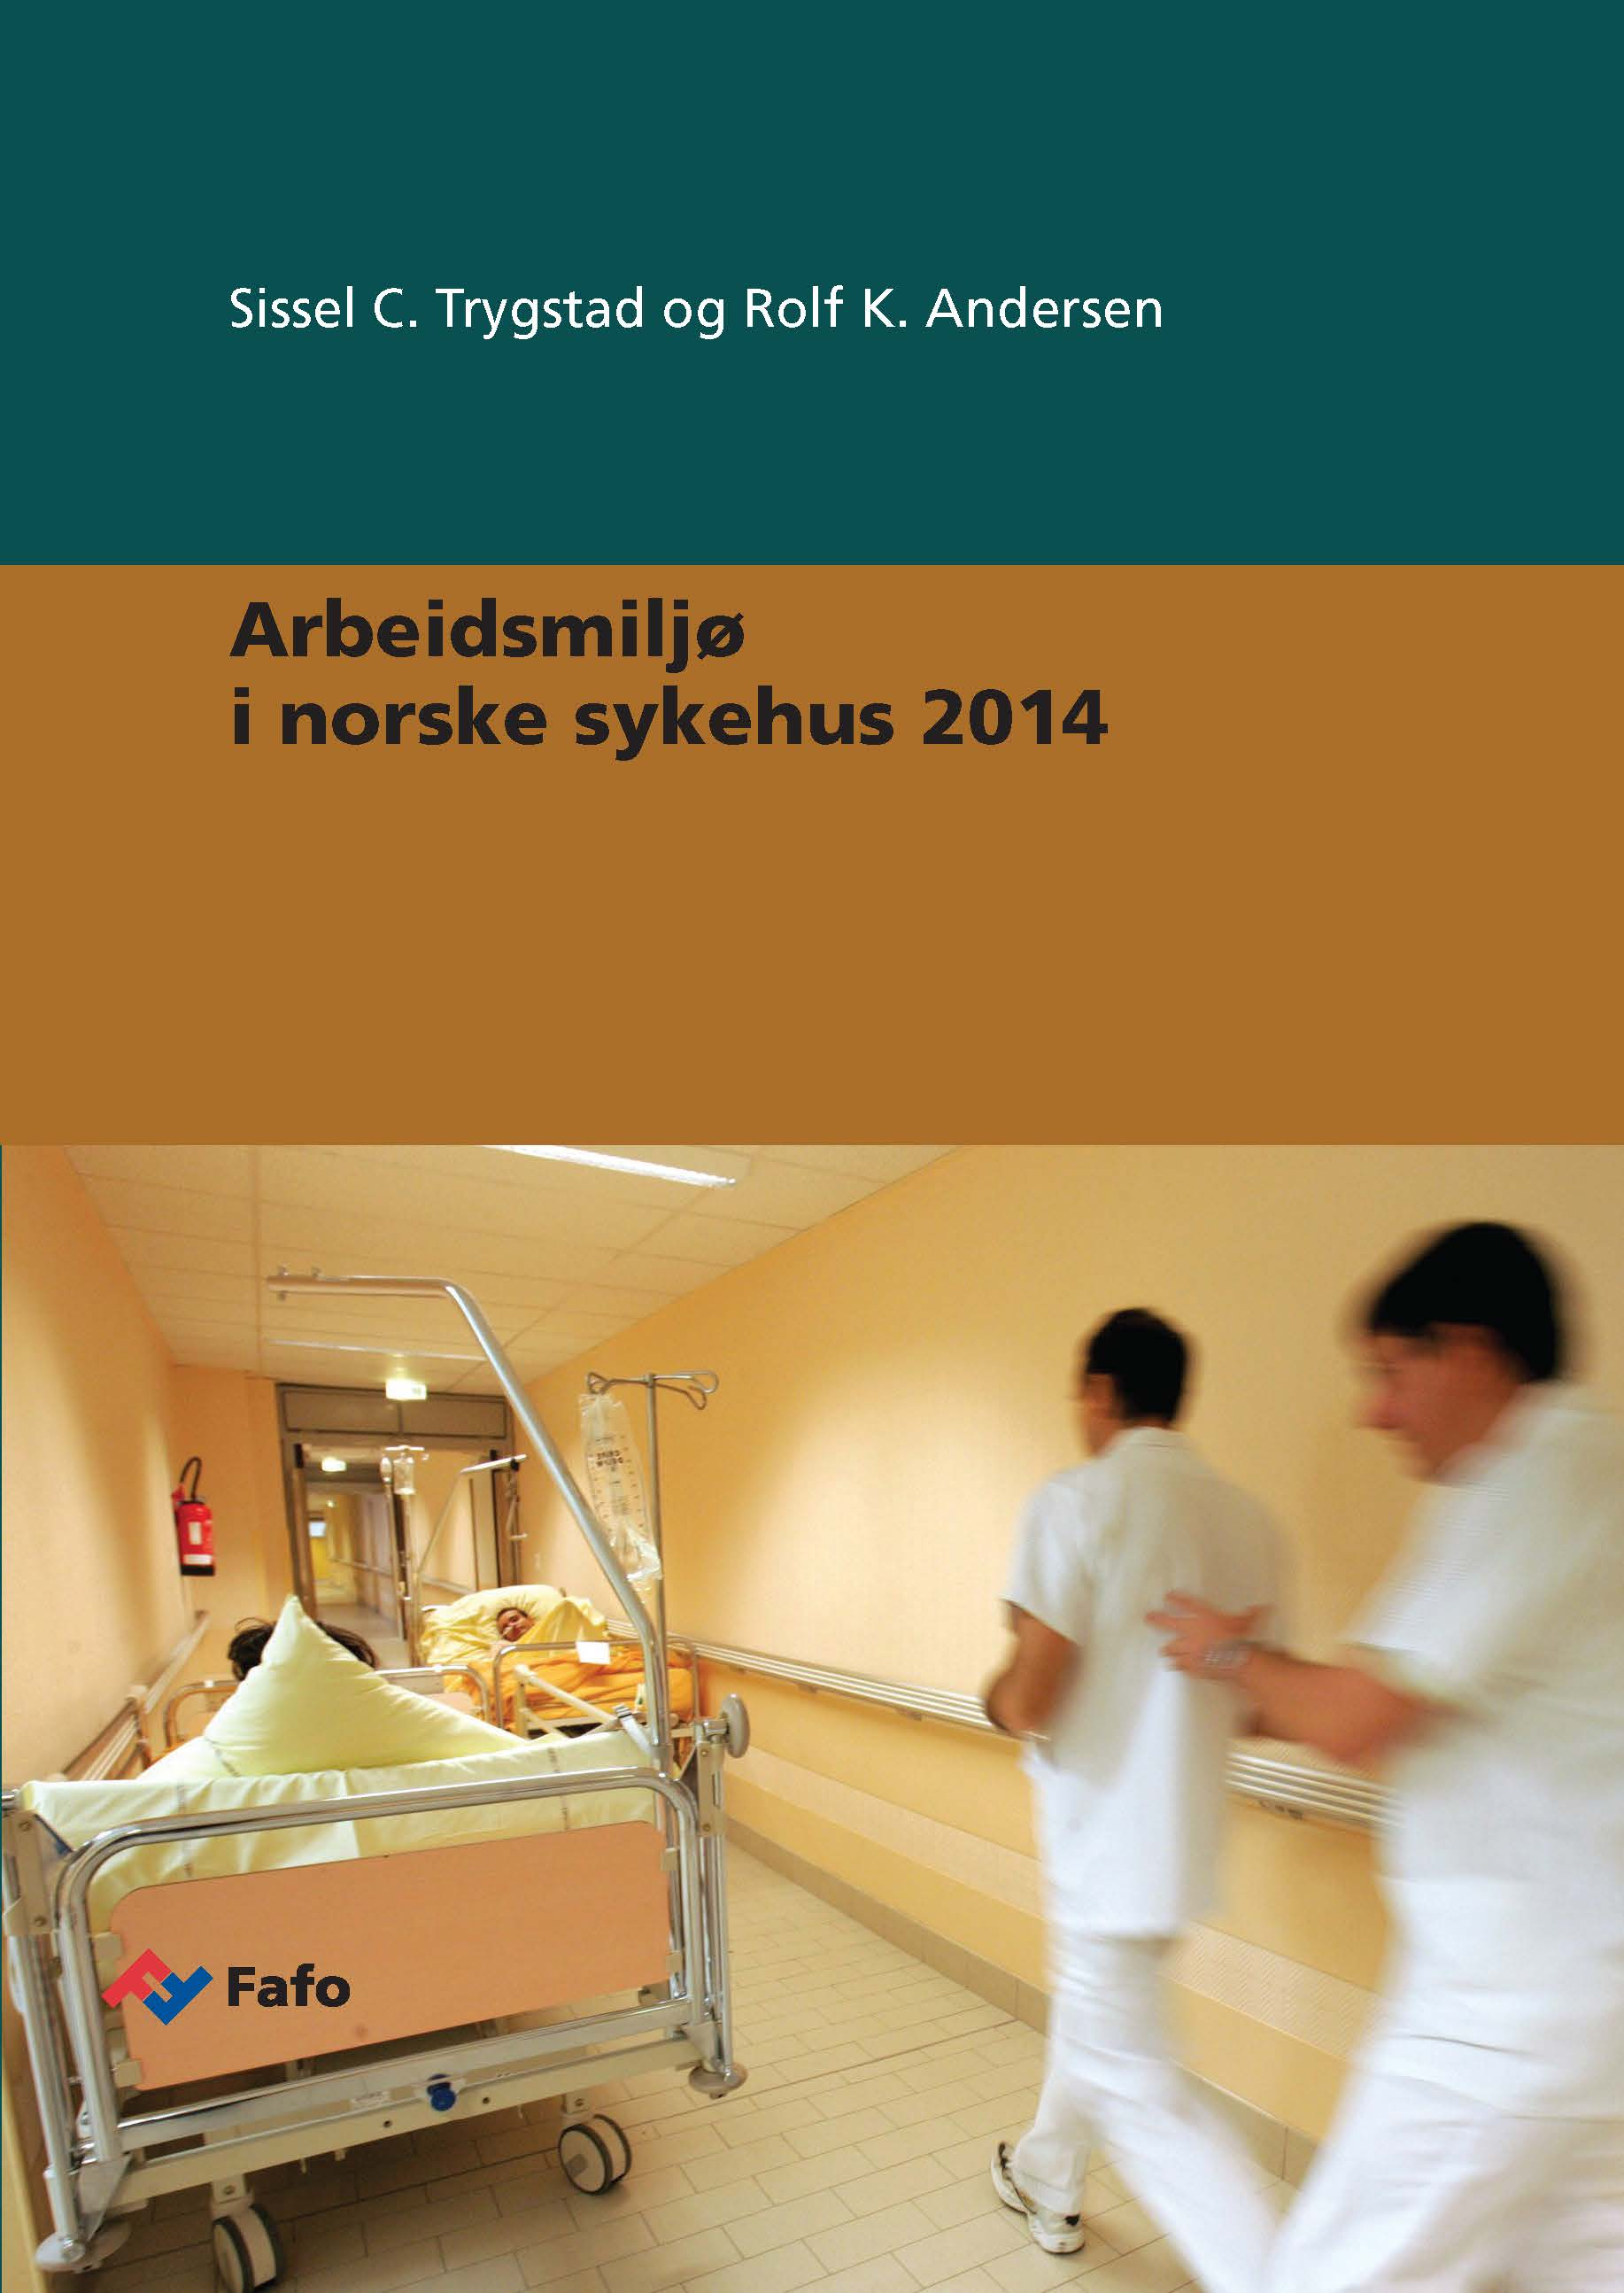 New report on work environment in Norwegian hospitals